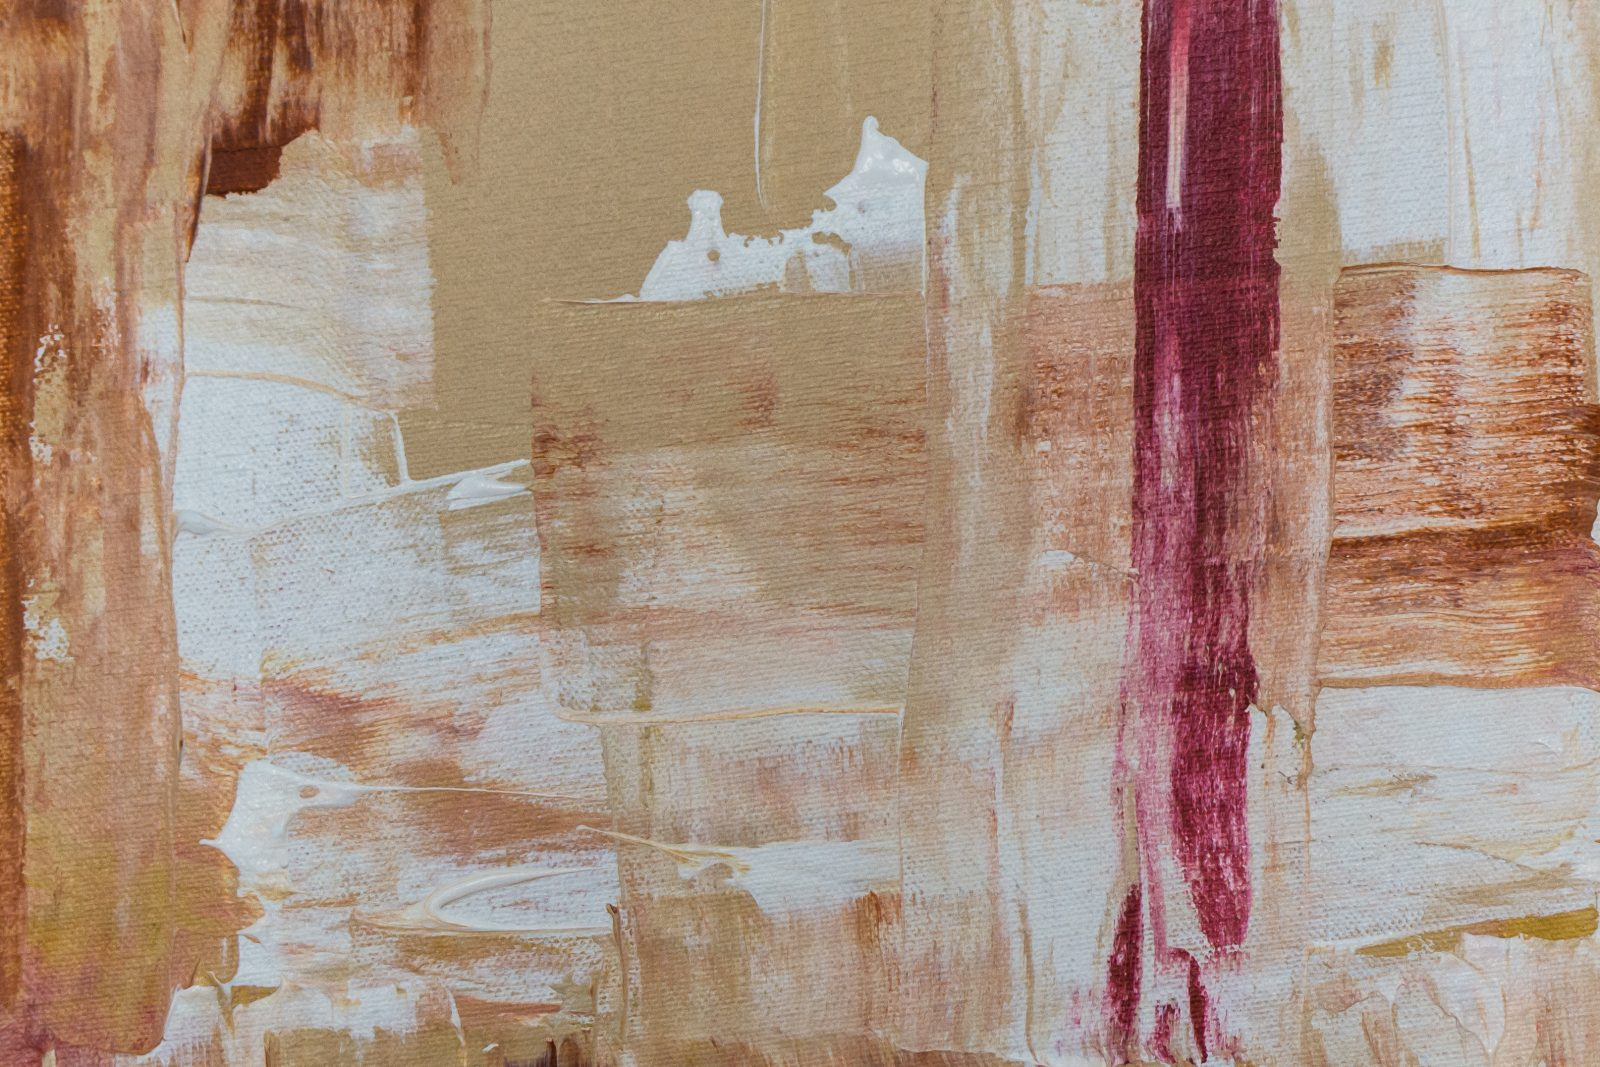 An abstract painting with rough brush strokes in browns, with a red stripe on the right